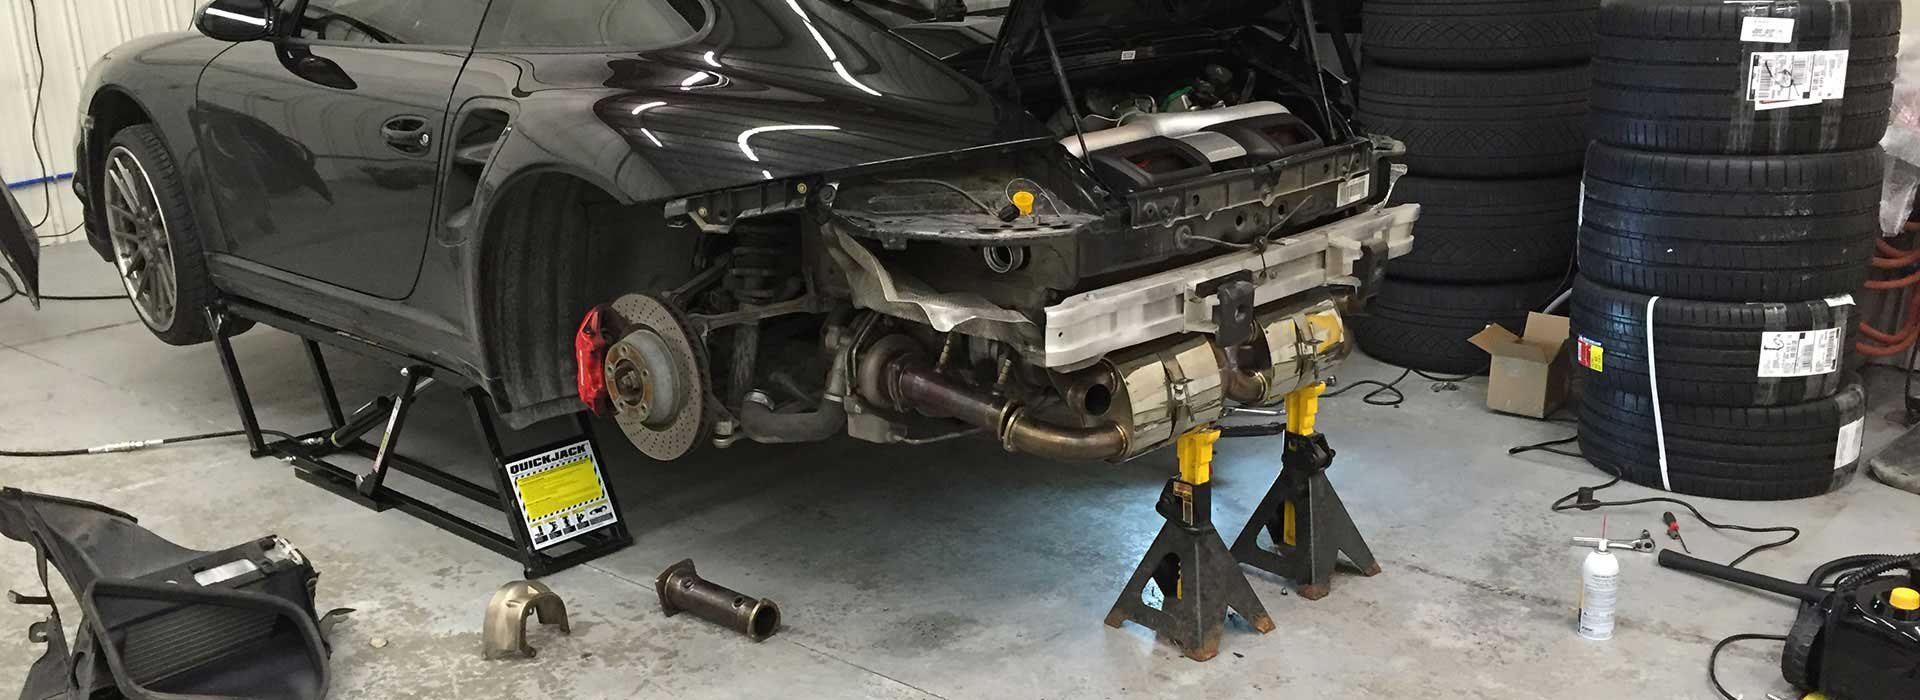 Quickjack canada portable car lift system for home garage or quickjack car jacking system solutioingenieria Image collections